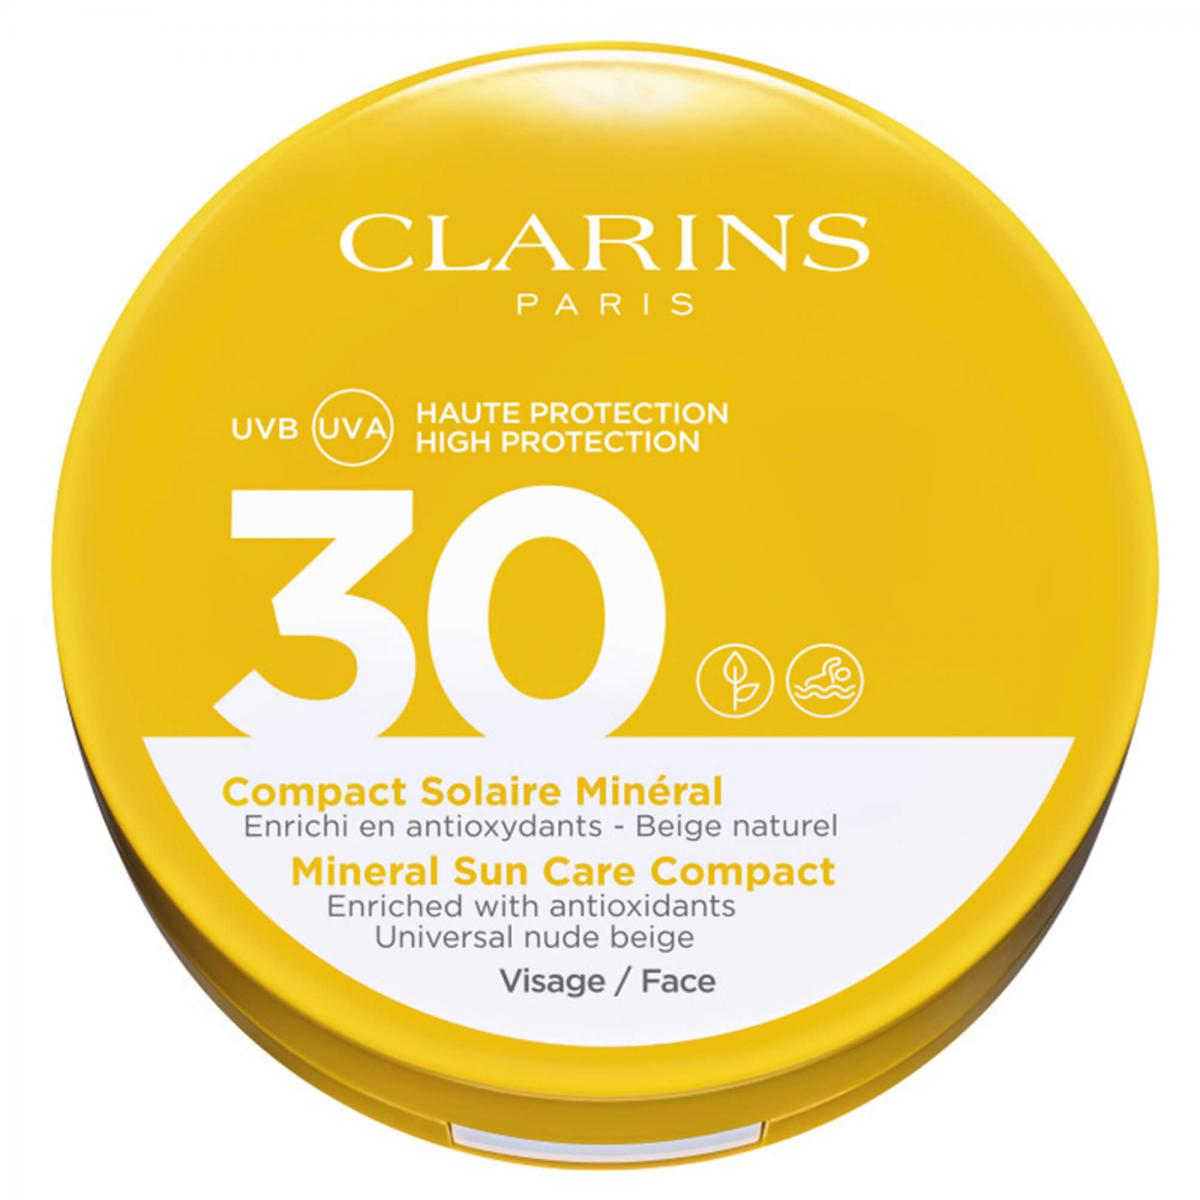 COMPACT SOLAIRE MINERAL SPF30 VISAGE Clarins Men